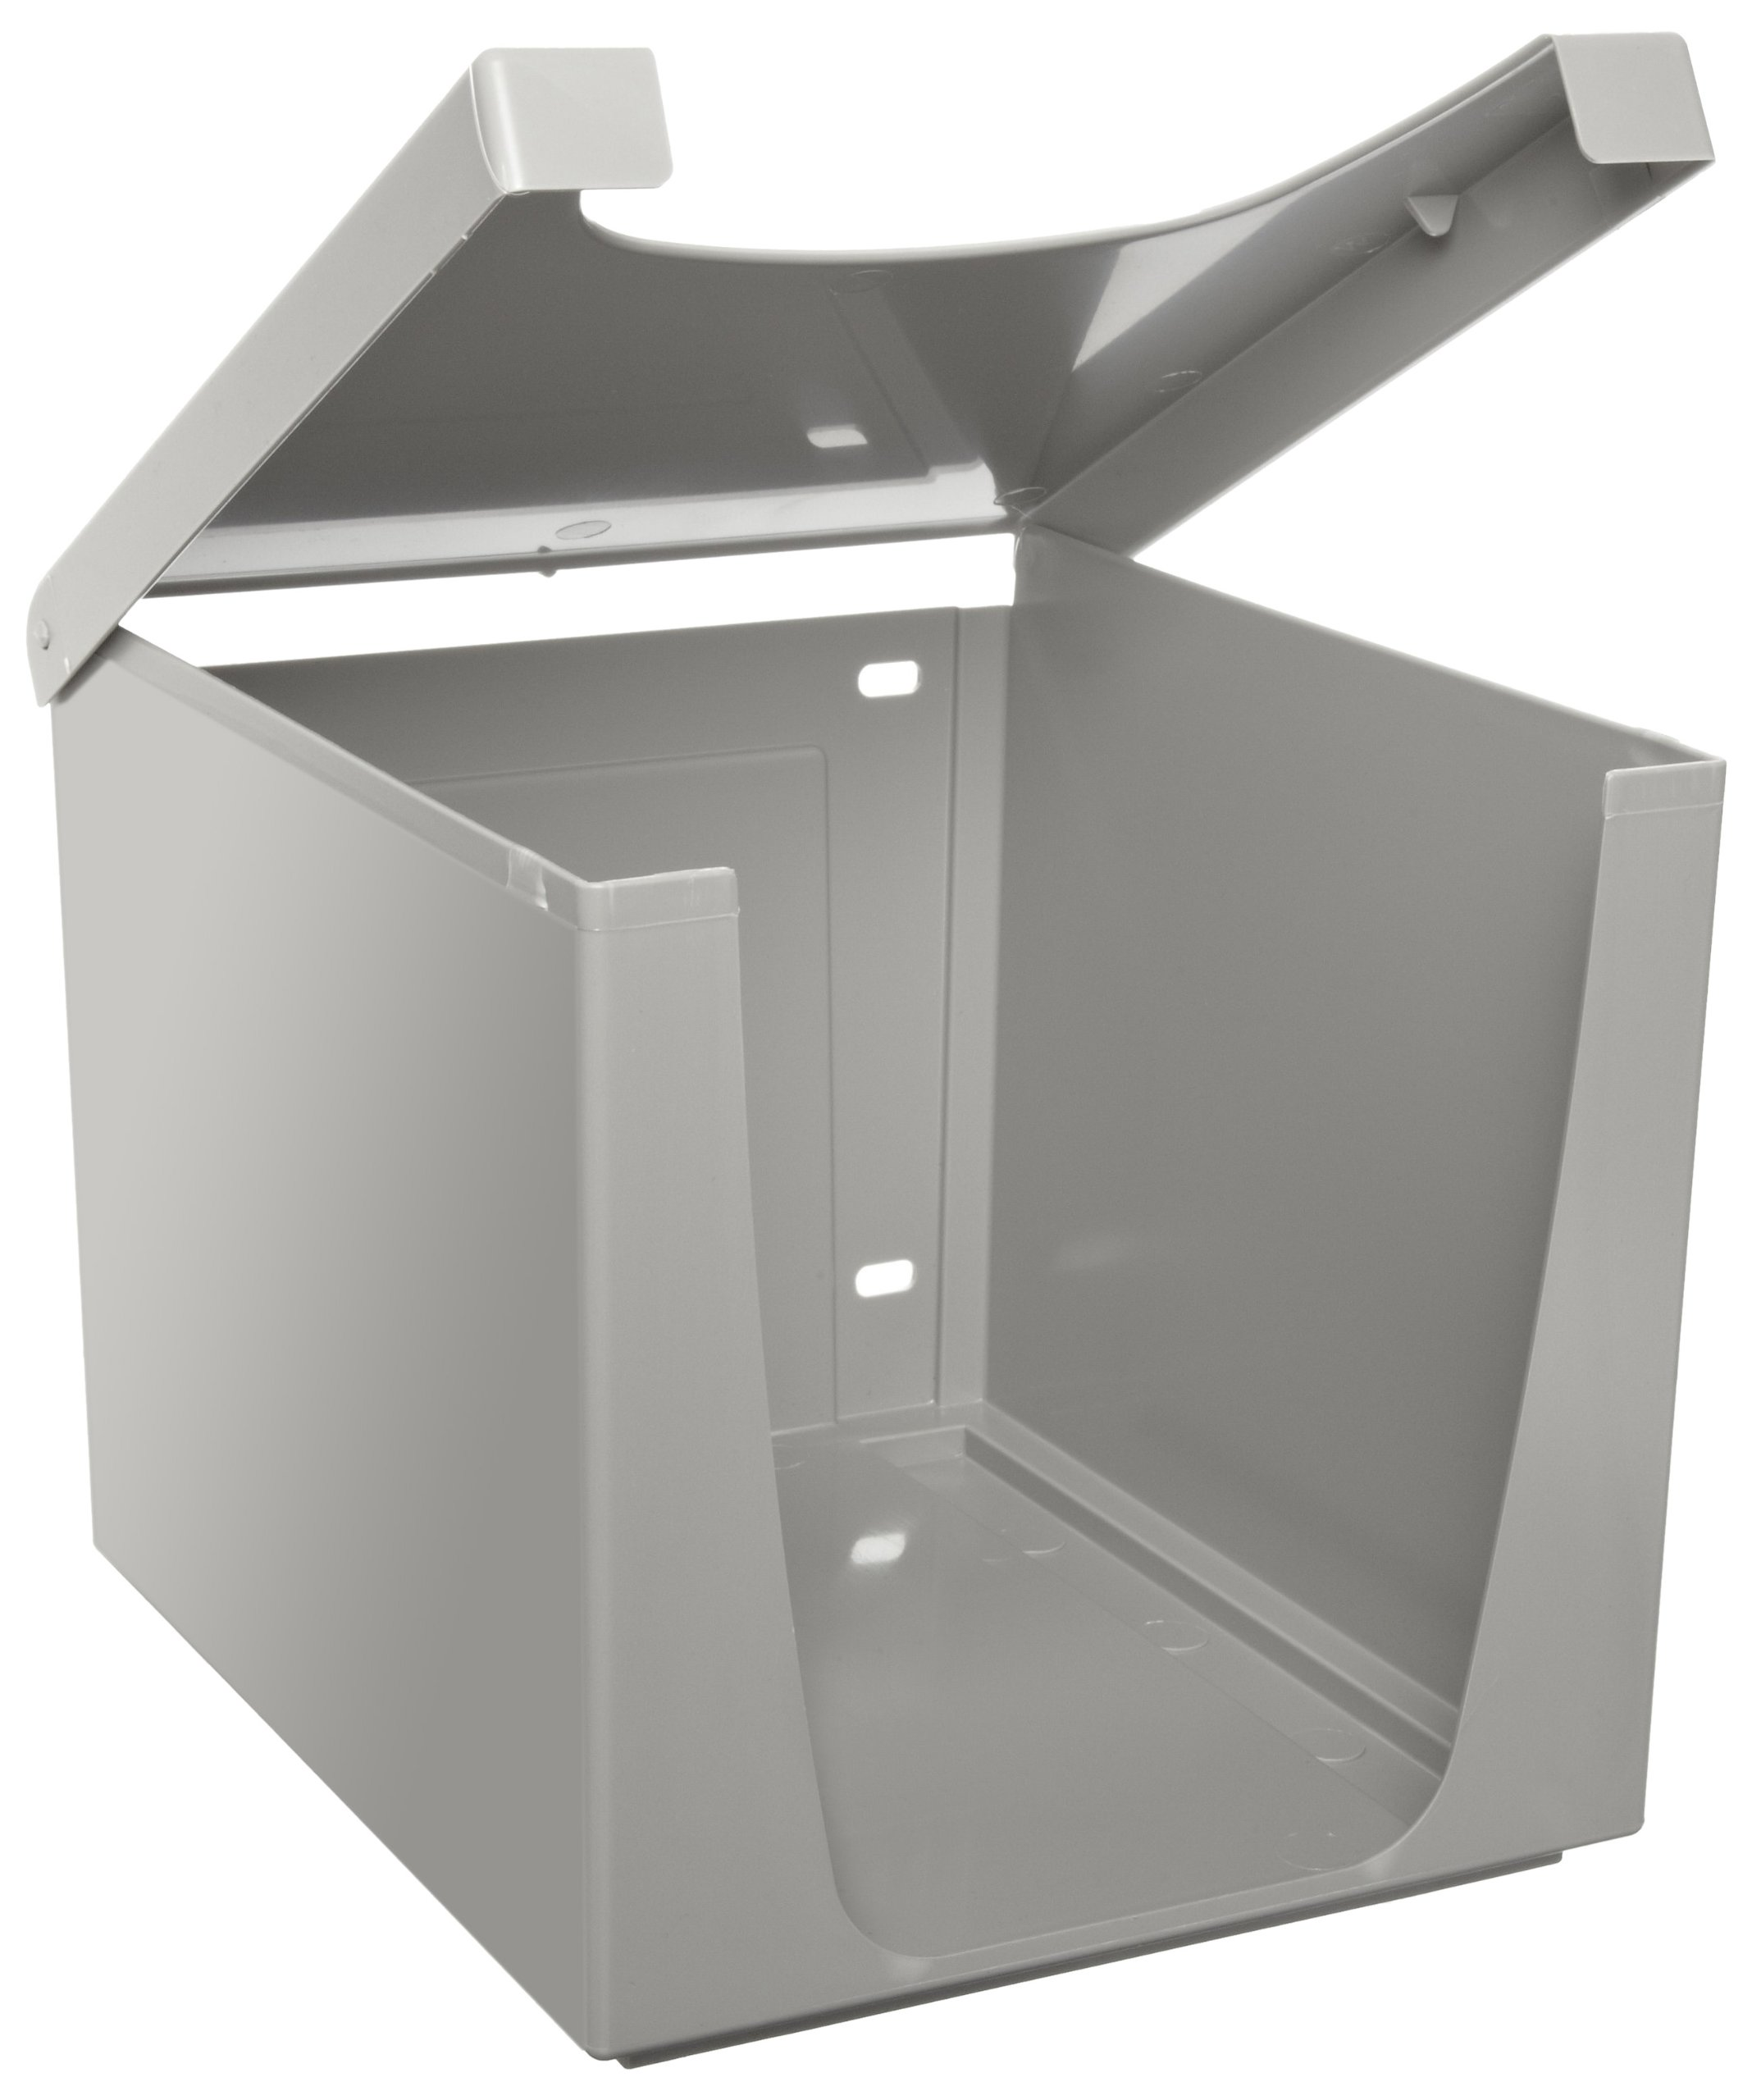 Quarterfold Wiper Dispenser for Wypall and Kimtech Wipes (09107), Countertop or Bench Top Unit, Grey, 6 Dispensers/Case